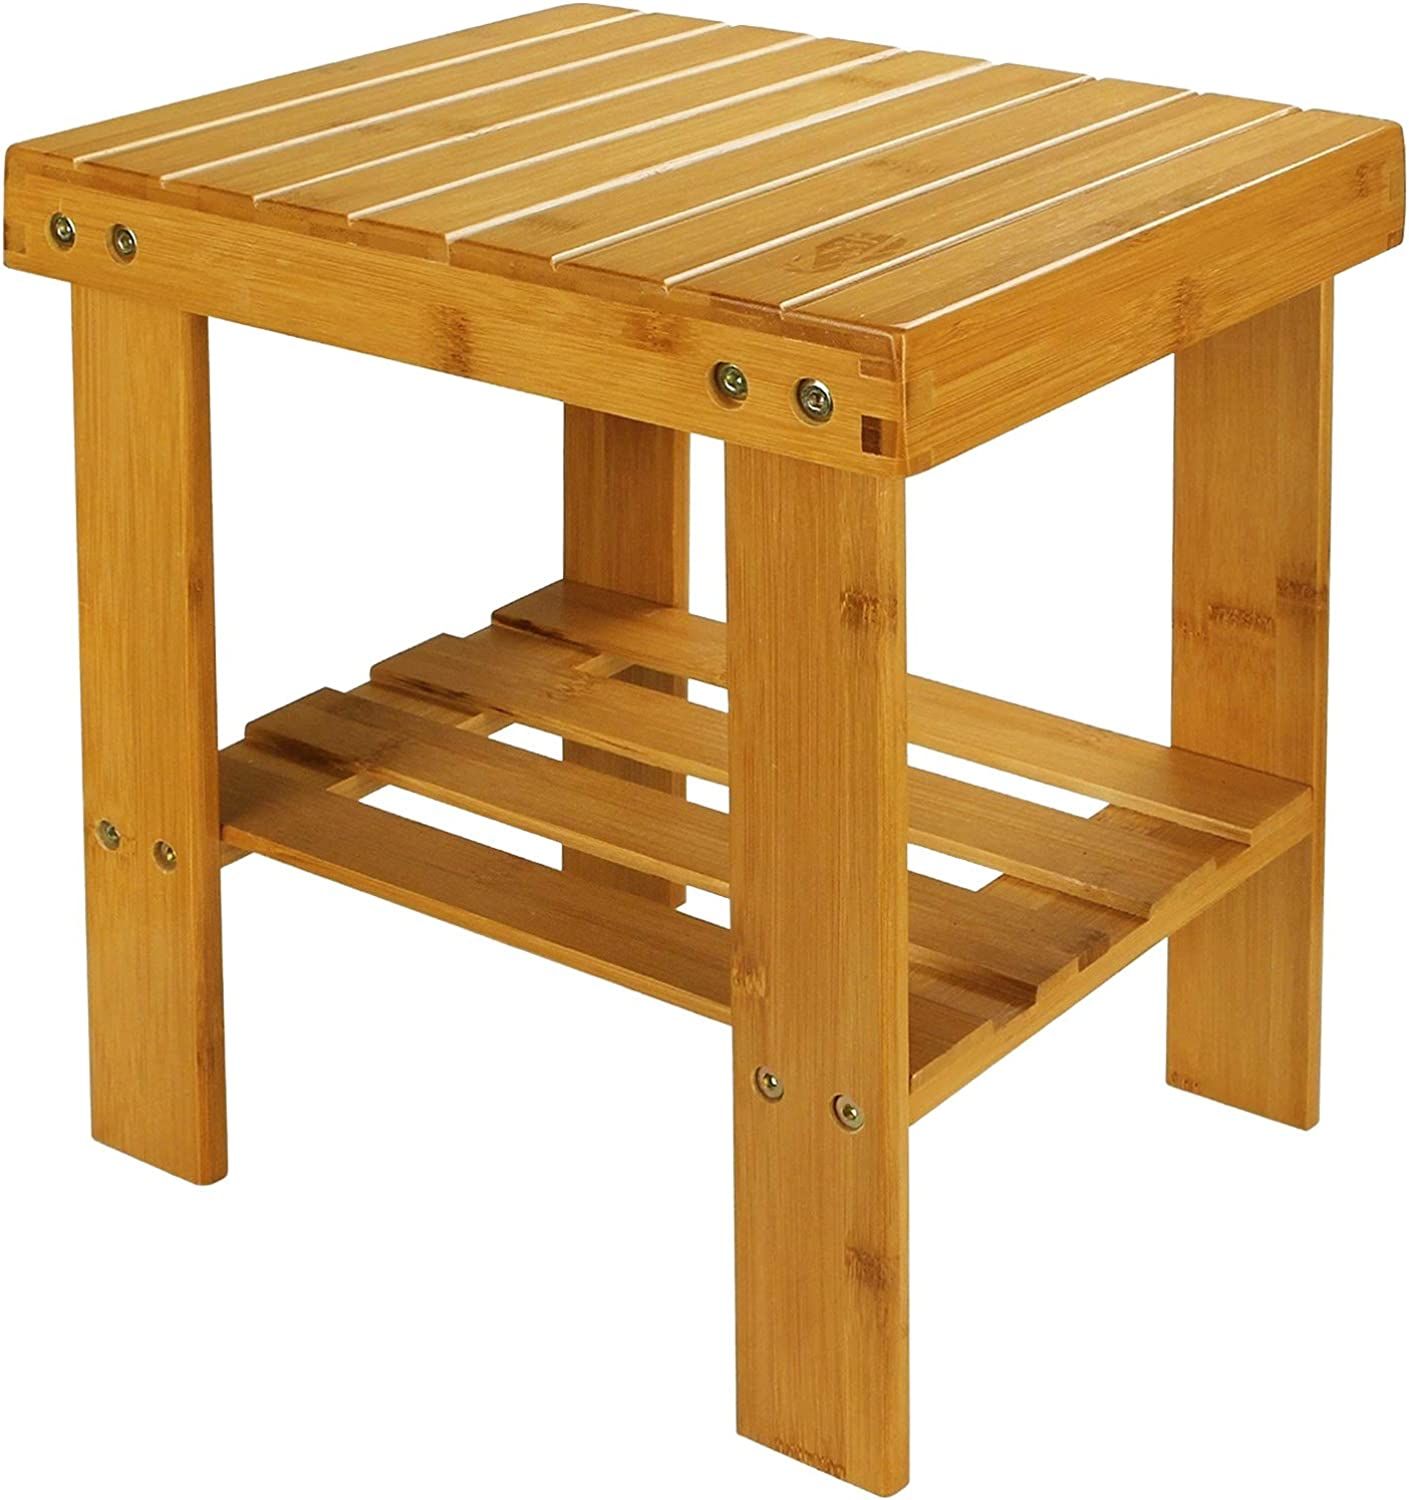 STARVAST Small Bamboo Step Stool shoes Bench Multi-Functional Wooden Stool Seat Kids Foot Stool Ideal for Entryway Foyer Hallway Garden - Large Size